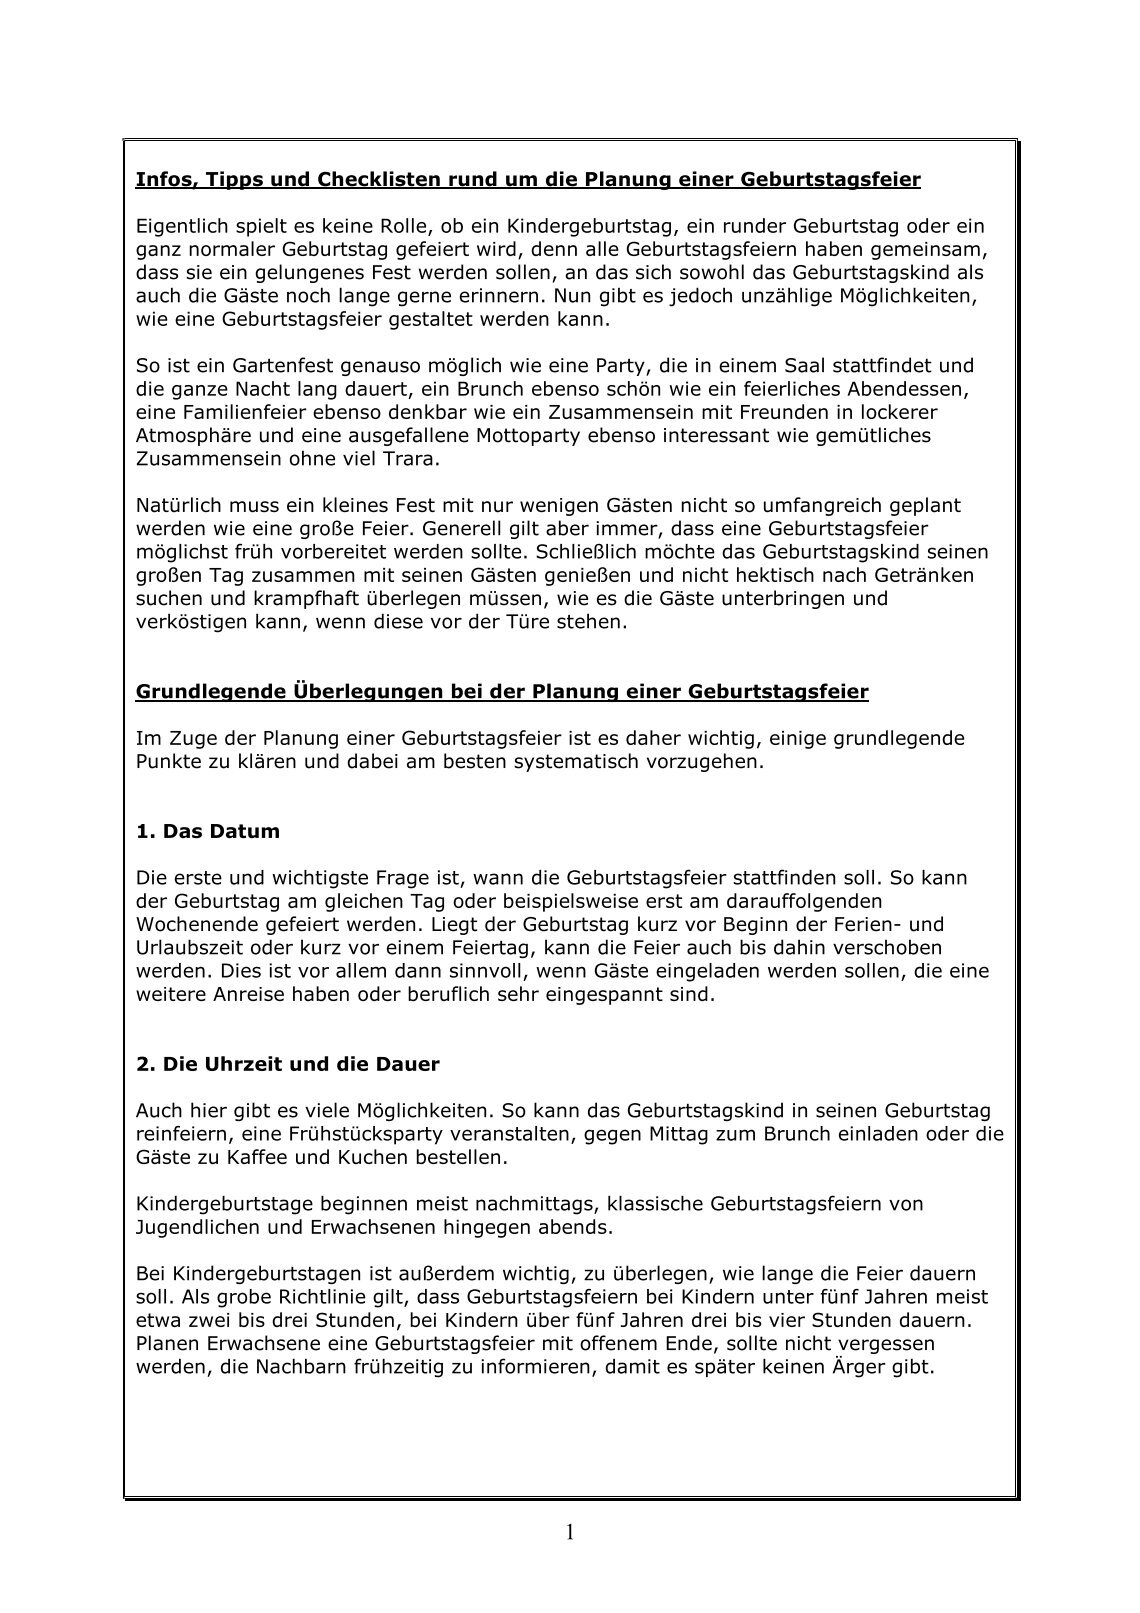 Gemütlich Narrative Umrissvorlage Bilder - Entry Level Resume ...